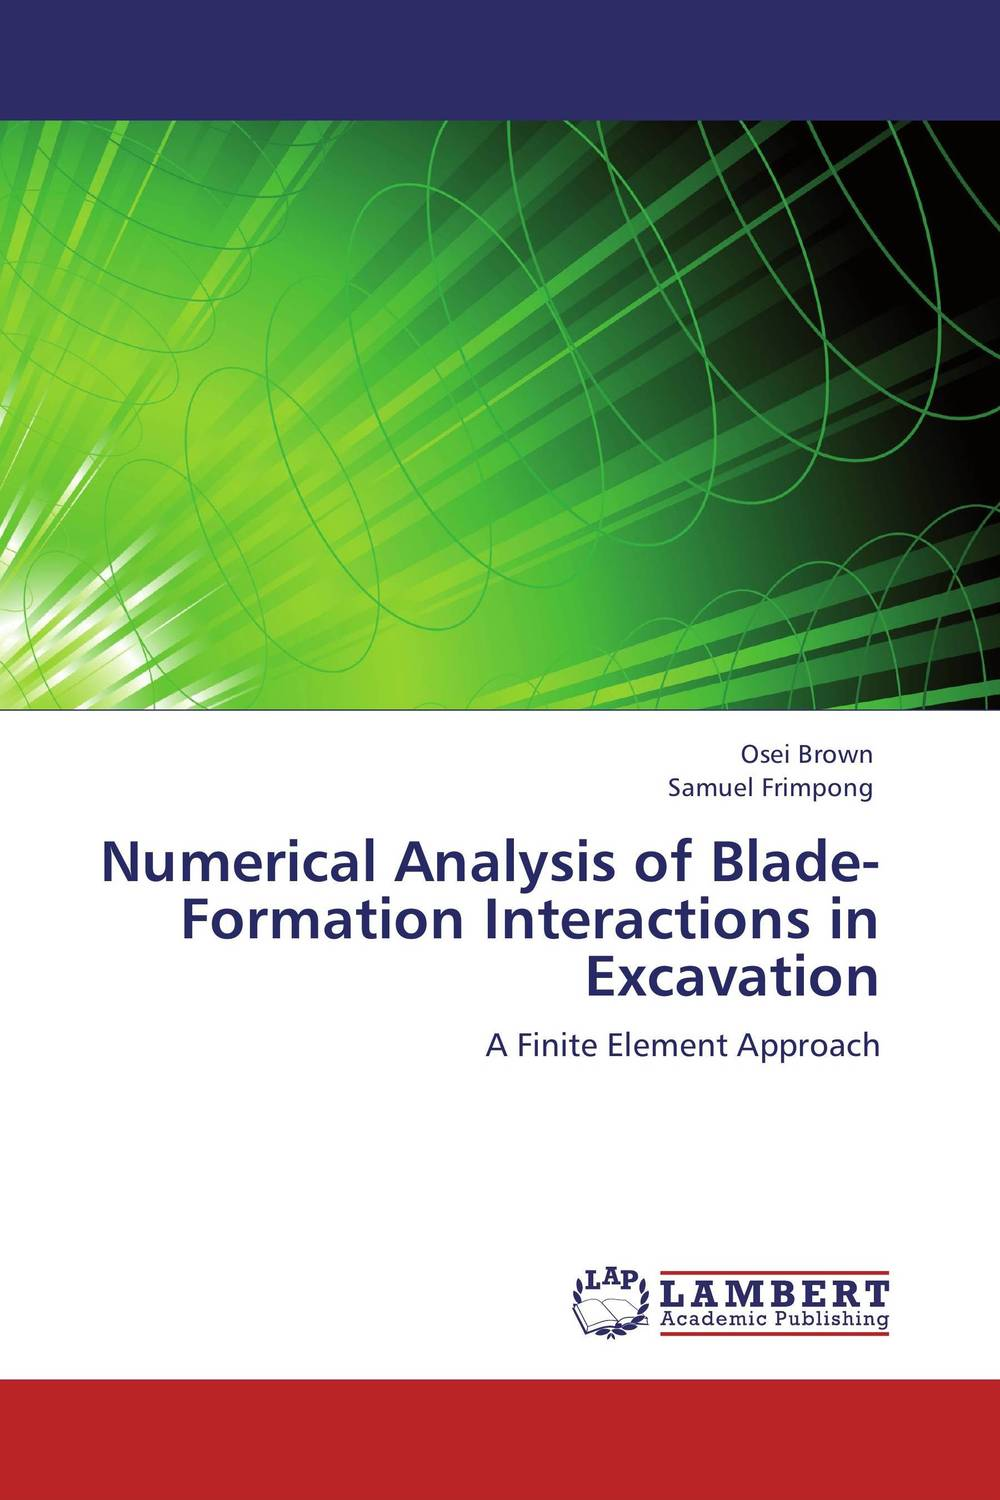 Numerical Analysis of Blade-Formation Interactions in Excavation the desert and the blade